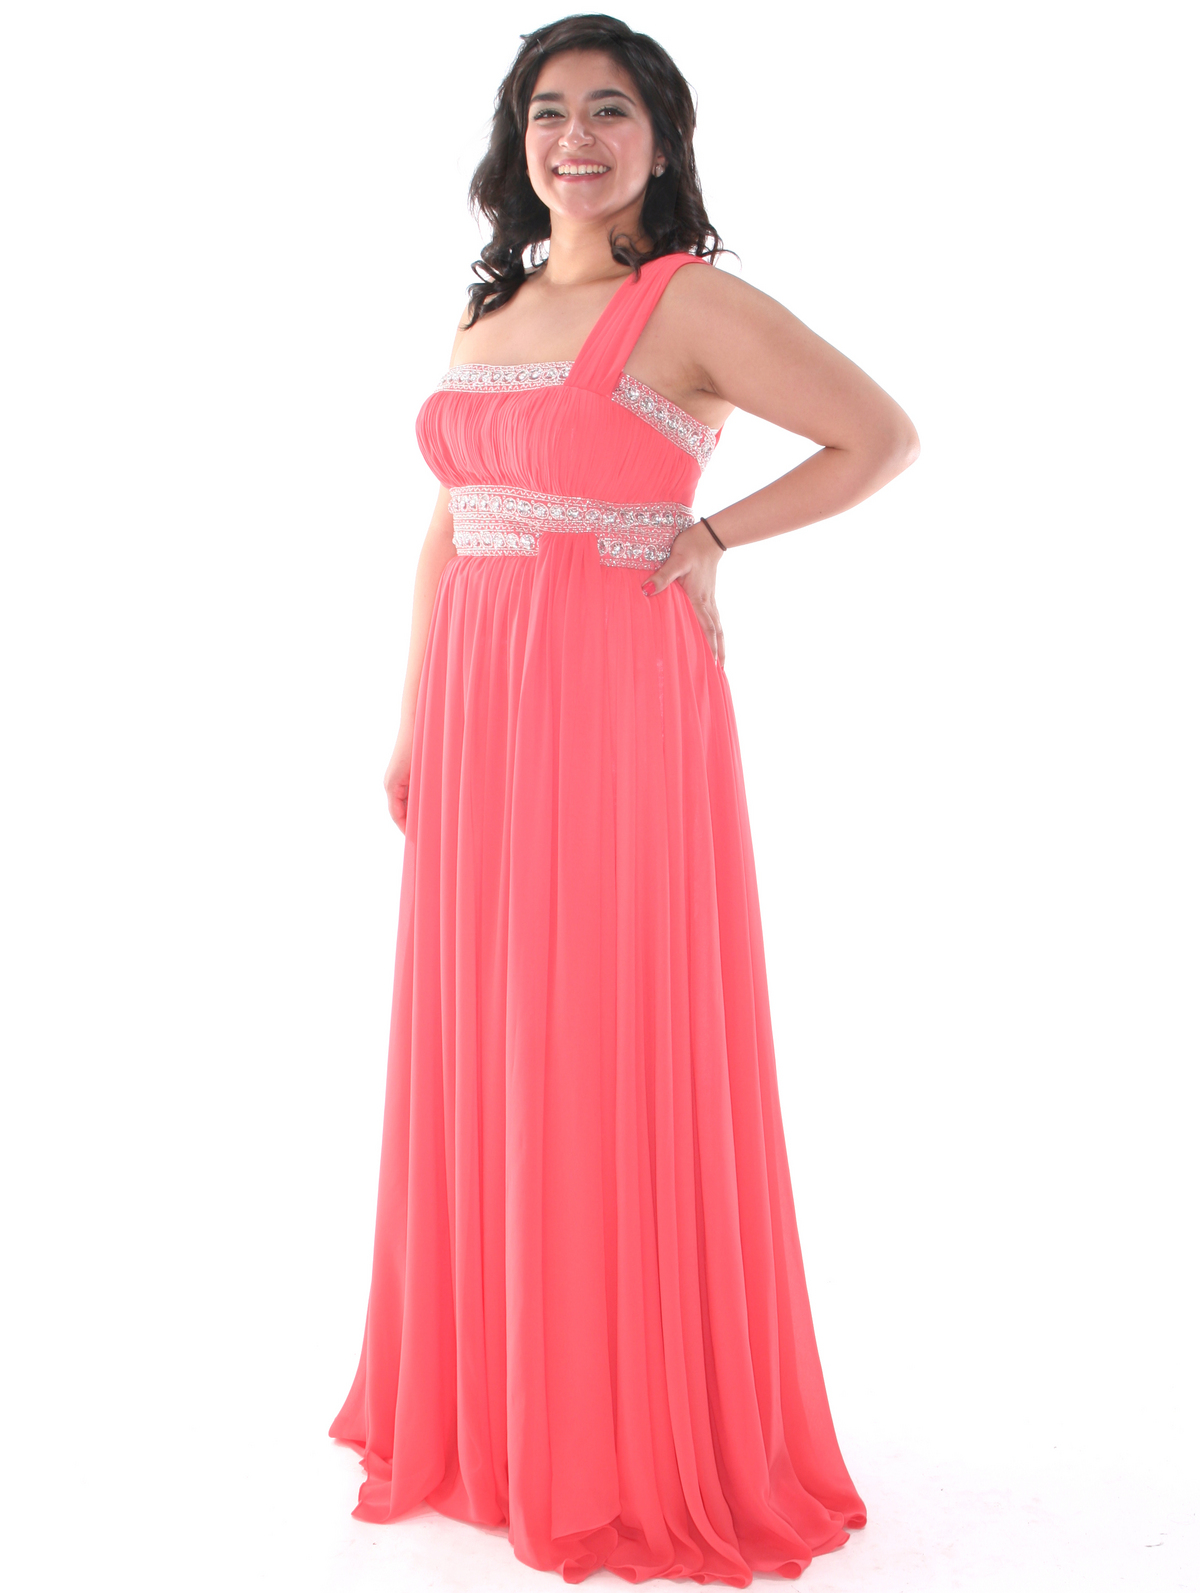 One Shoulder Chiffon Prom Dress | Sung Boutique L.A.